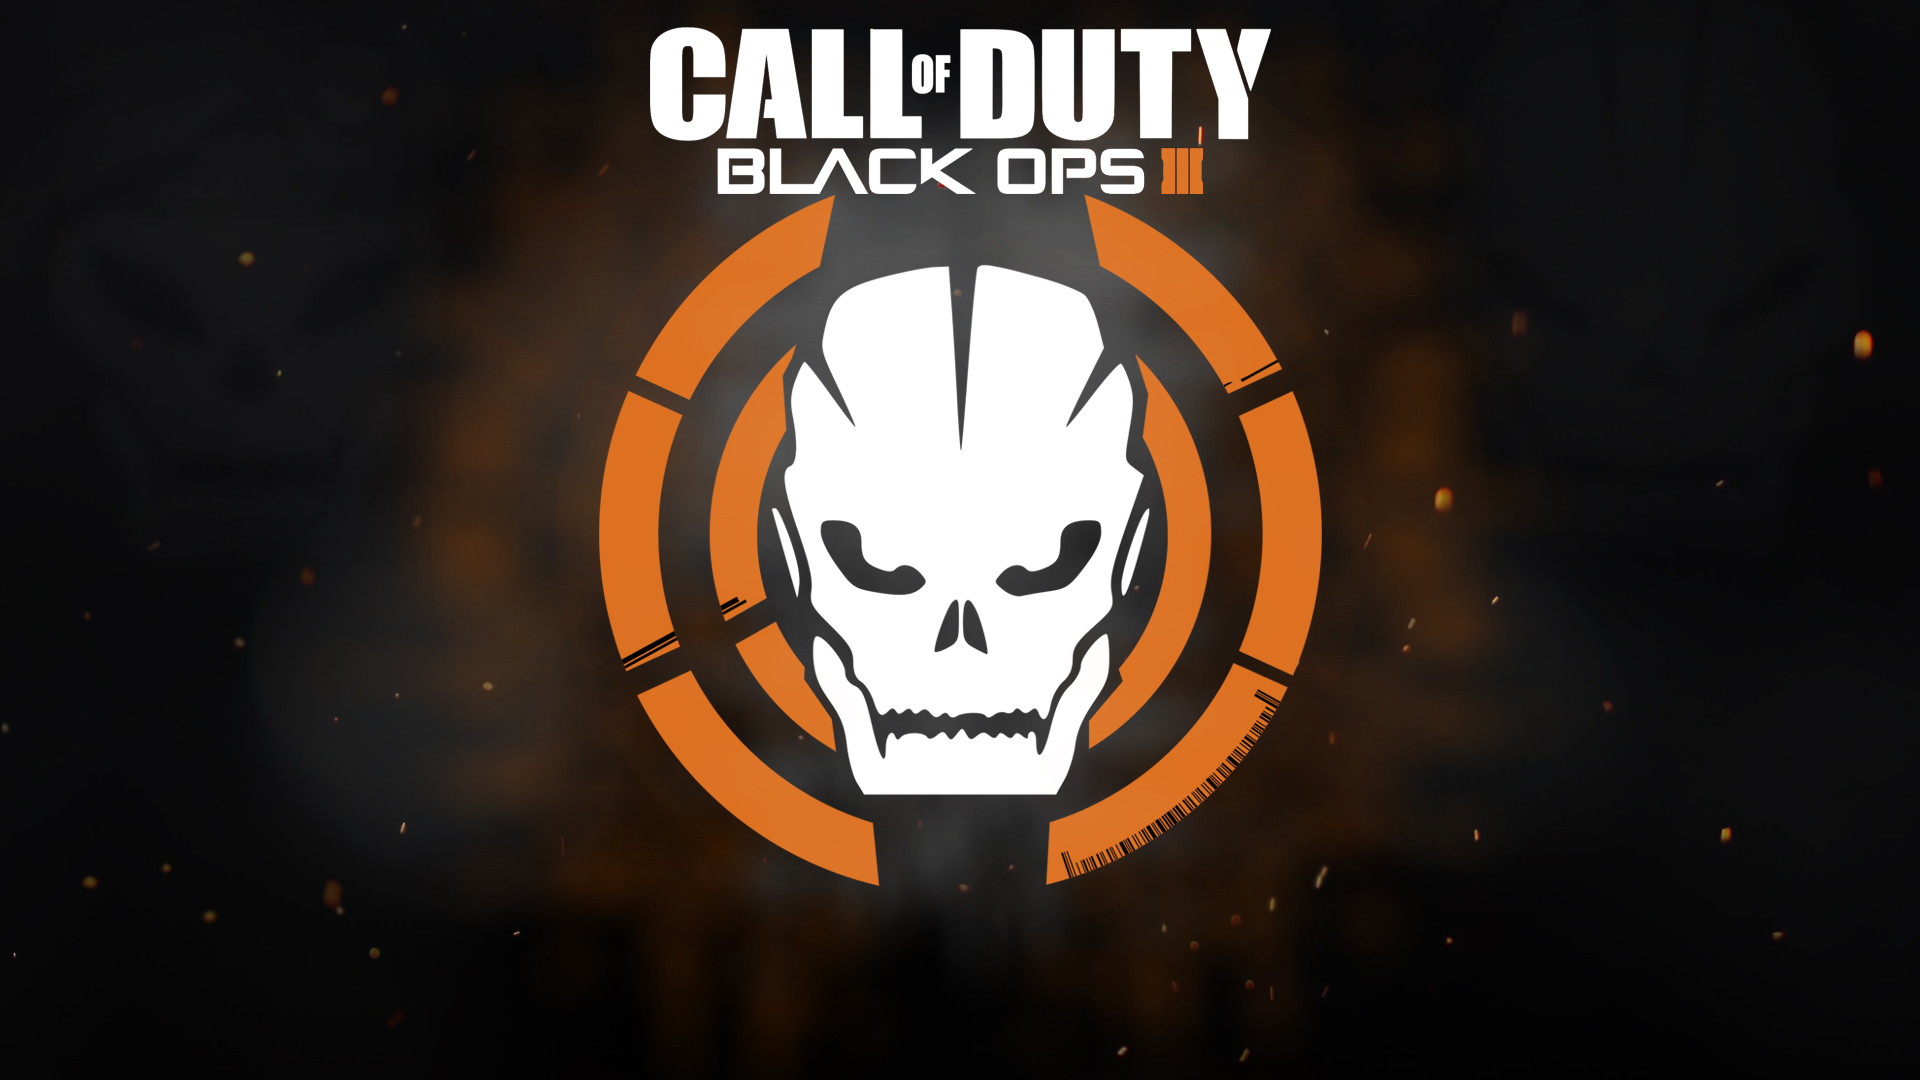 Call of Duty Black Ops 3 Wallpaper 02 by Toby Affenbude toby 1920x1080